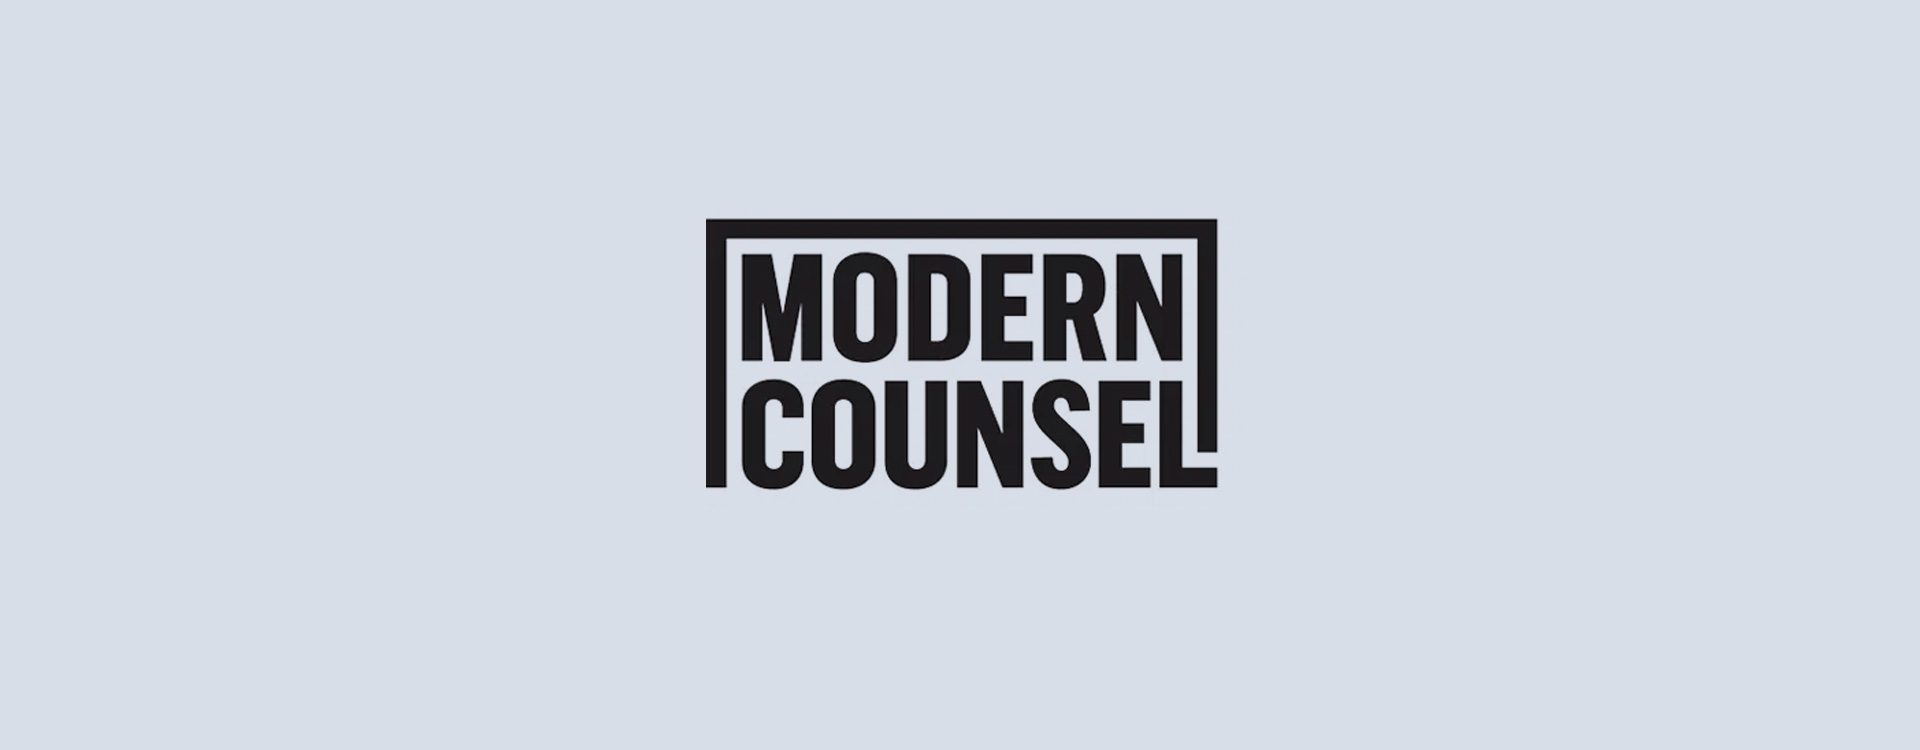 Modern Counsel logo